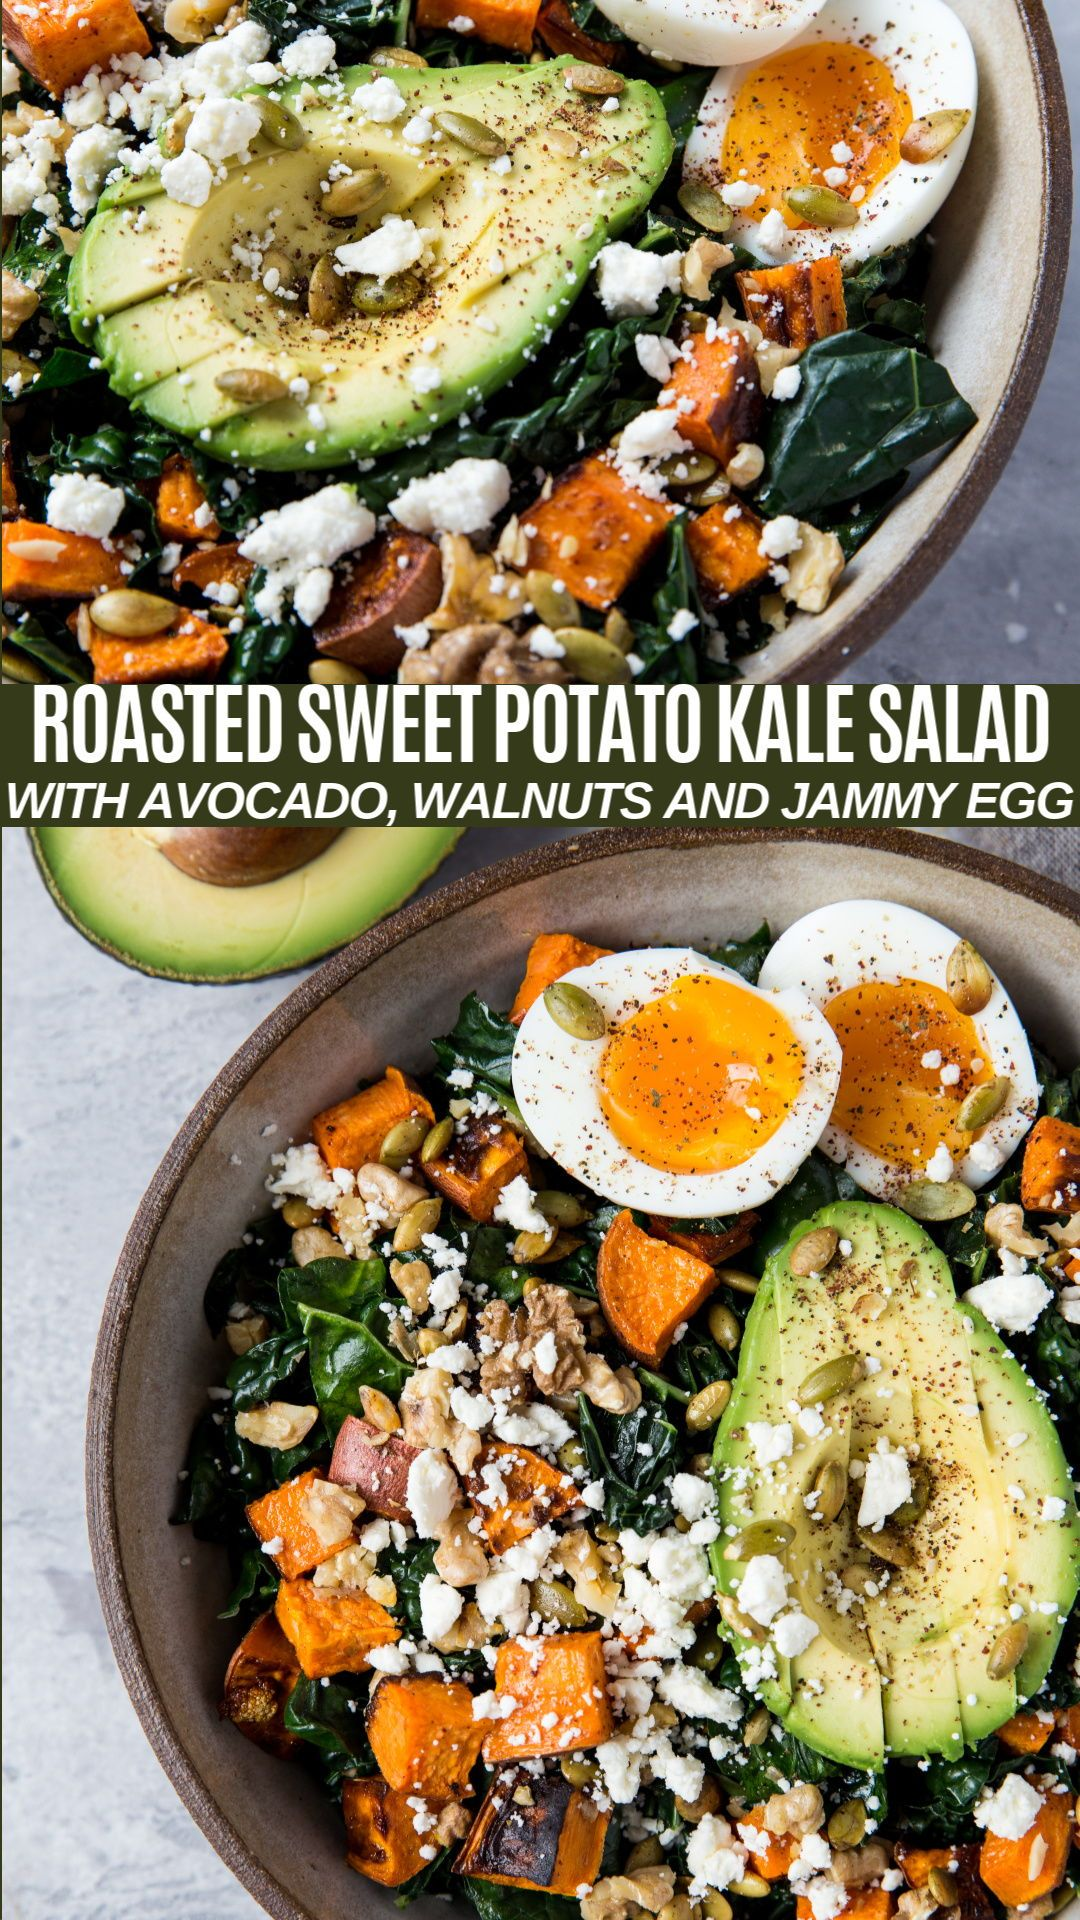 Roasted Sweet Potato Kale Salad with Avocado and Jammy Egg